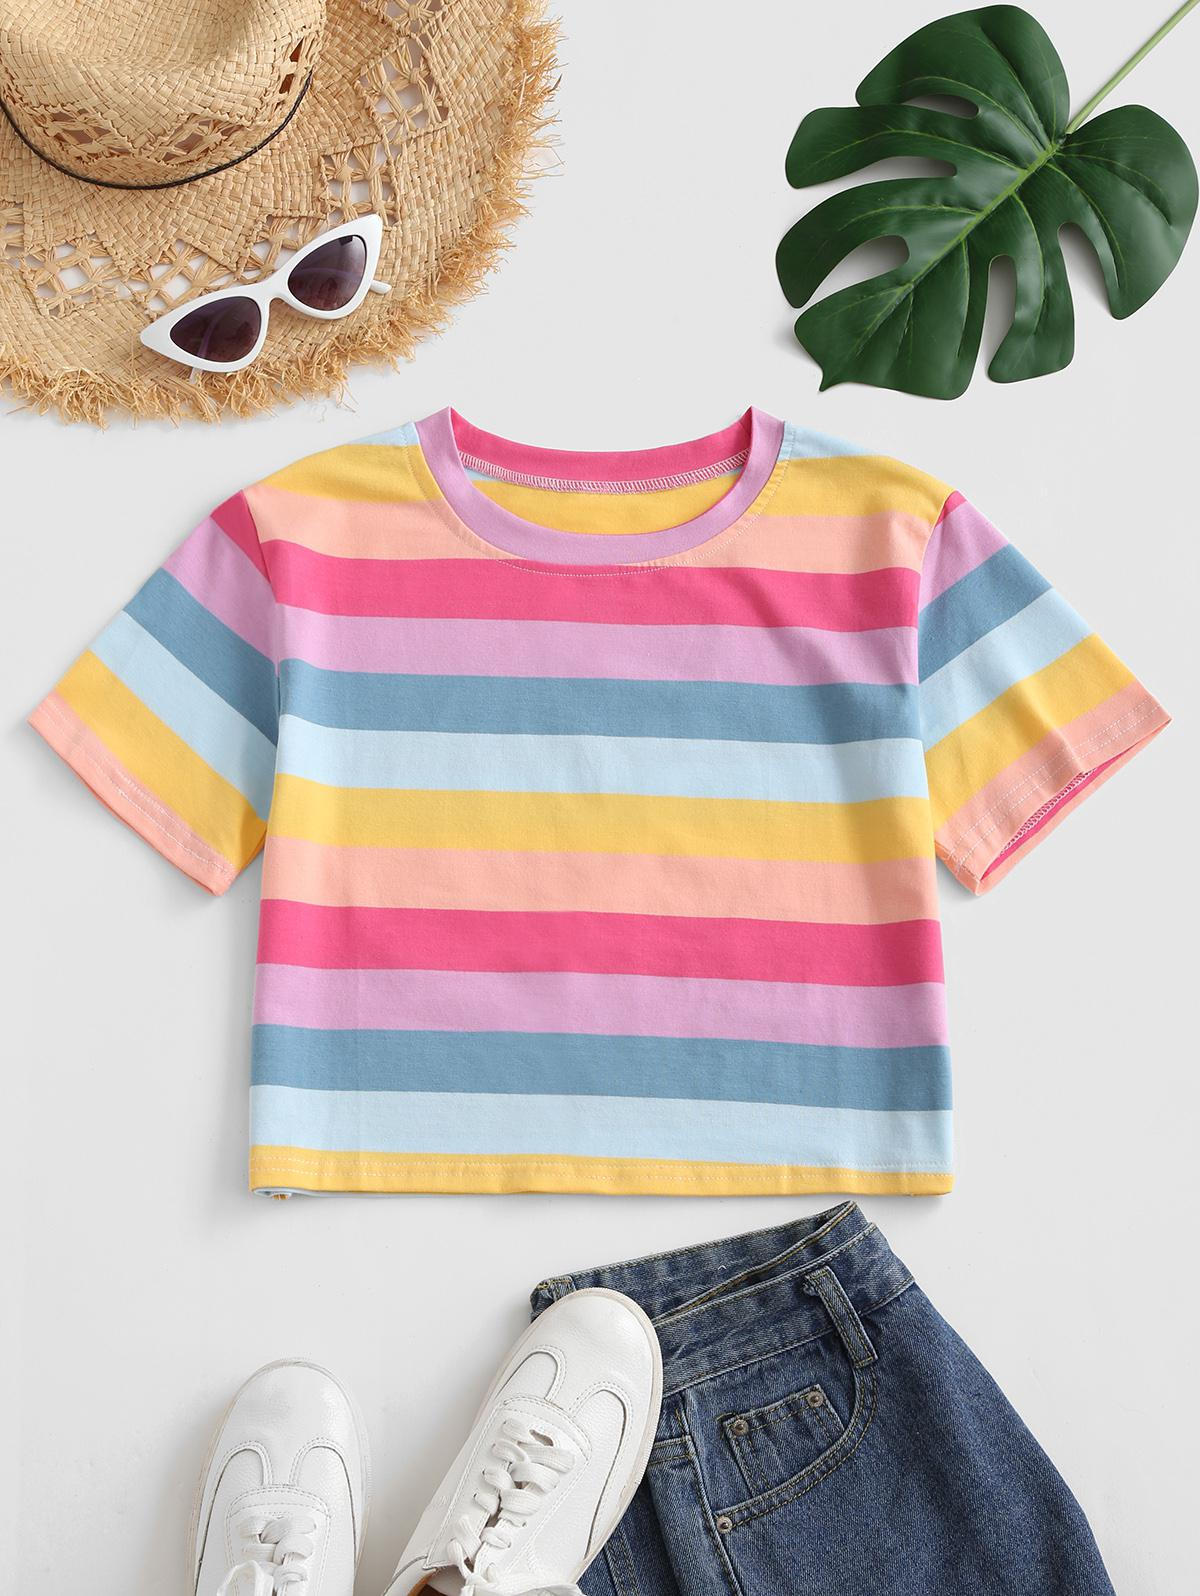 Cropped Colorful Stripes Tee